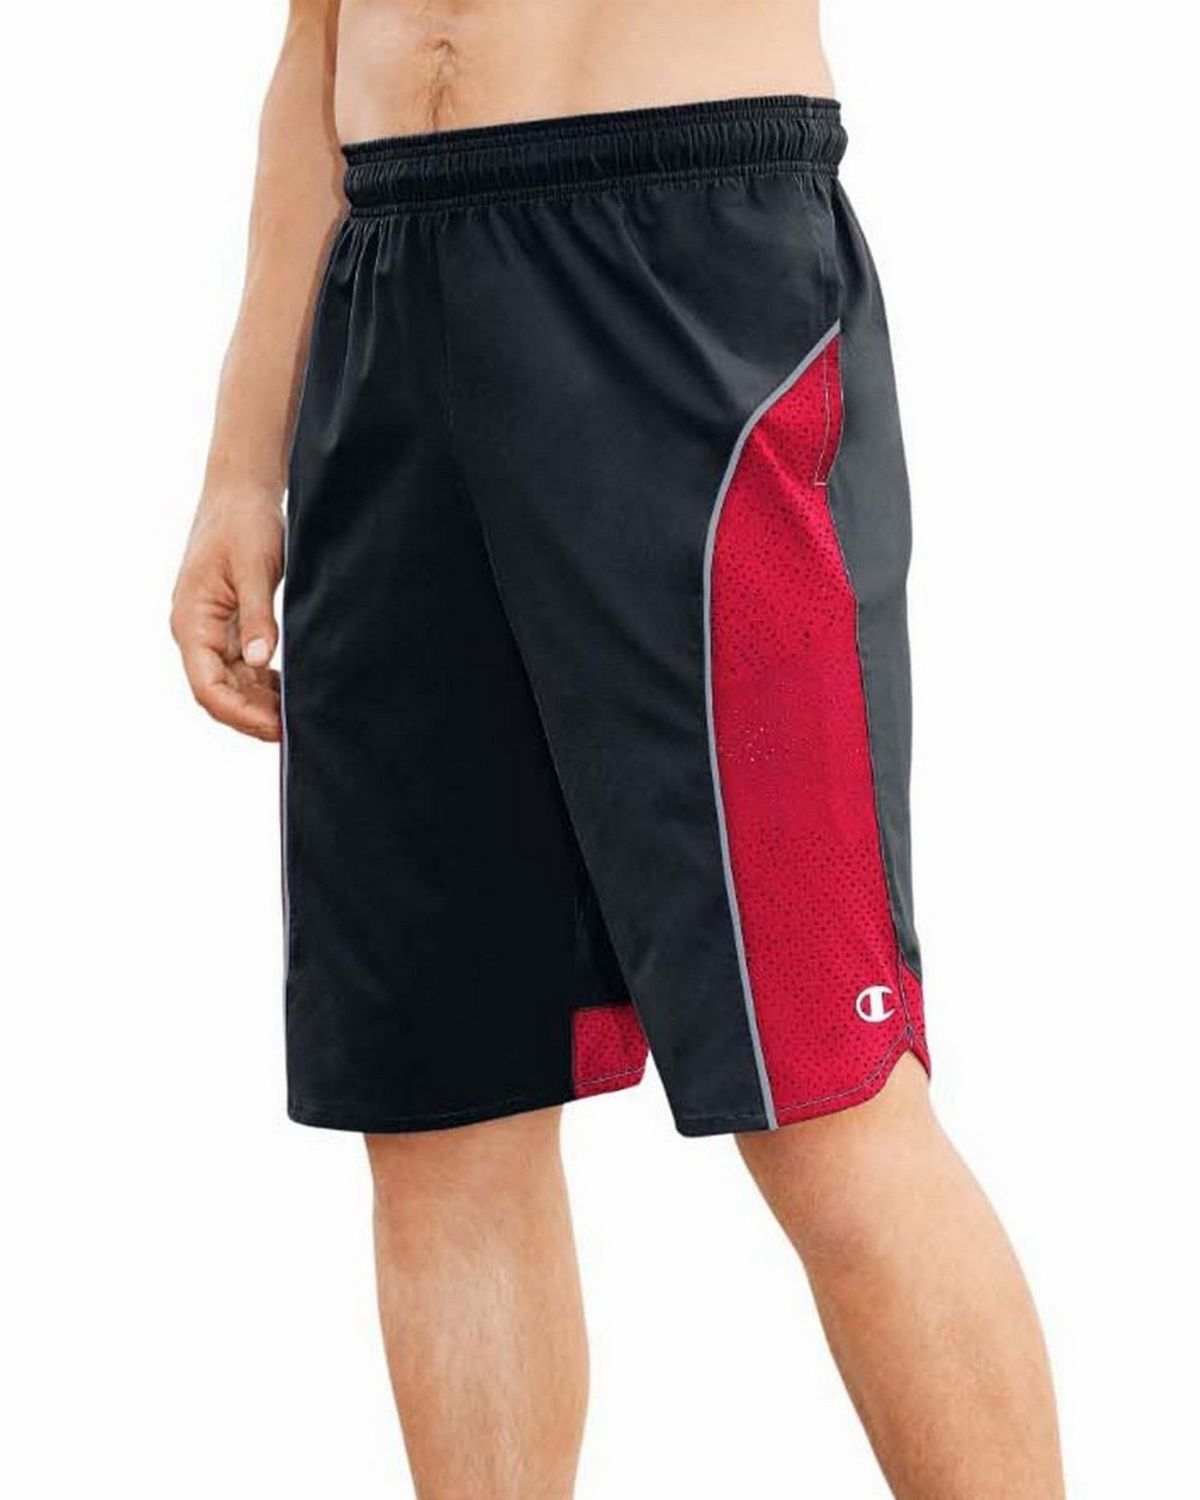 Champion 80297 Best Woven Shorts - Black/Scarlet/Concrete - S 80297